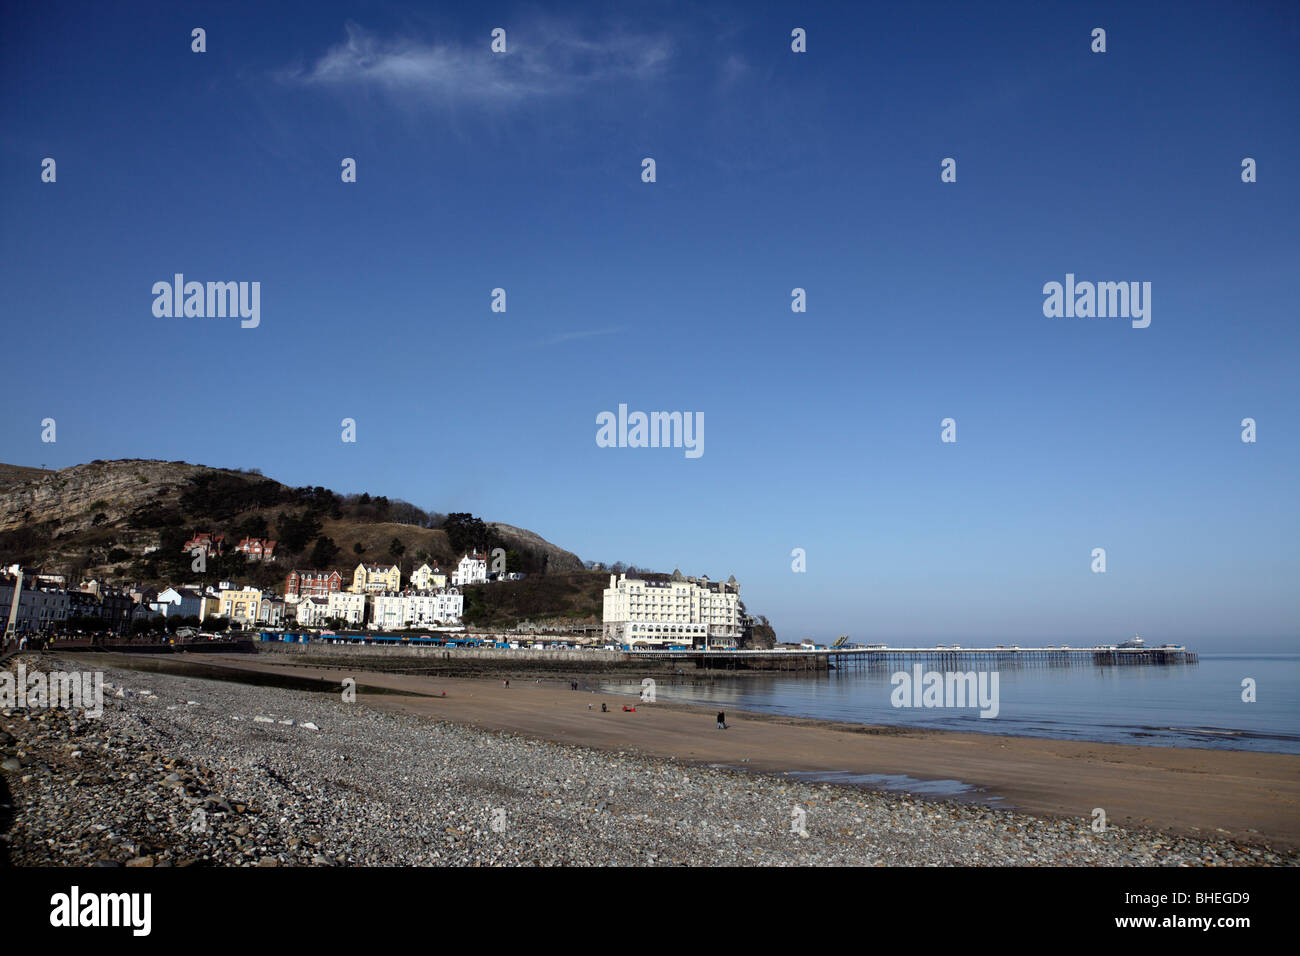 view towards the pier and bay of llandudno conway clwyd north wales uk - Stock Image